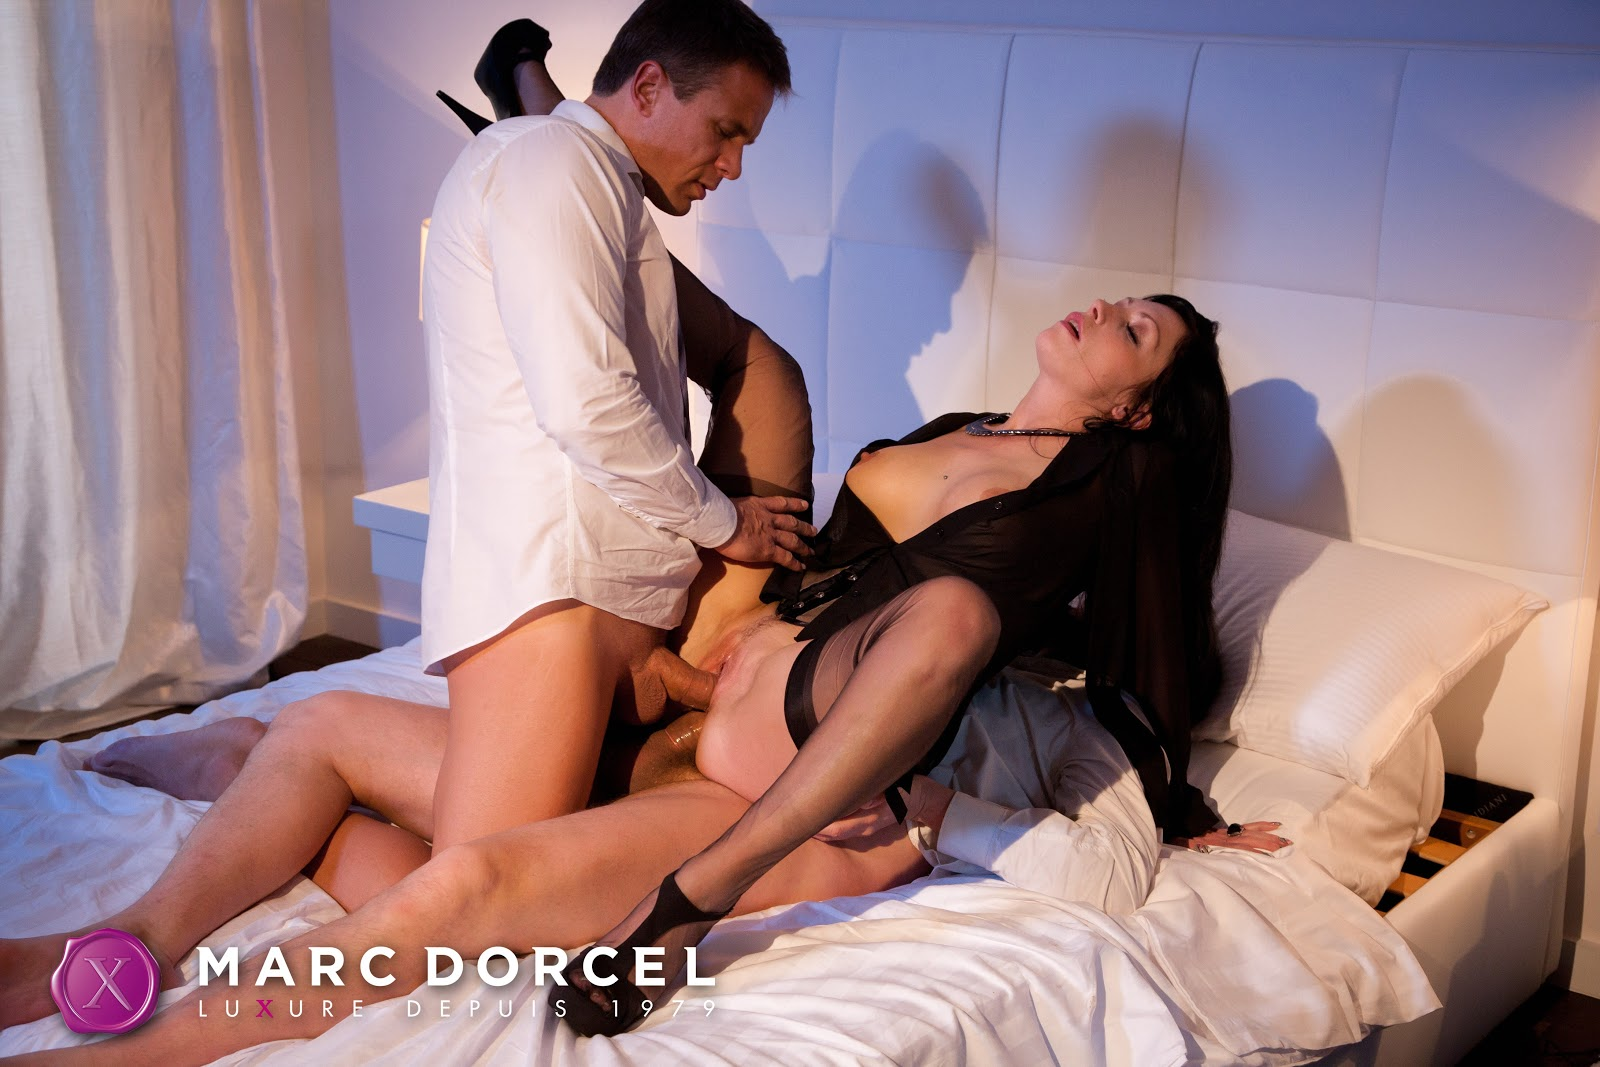 In izle porno video dorcel mark